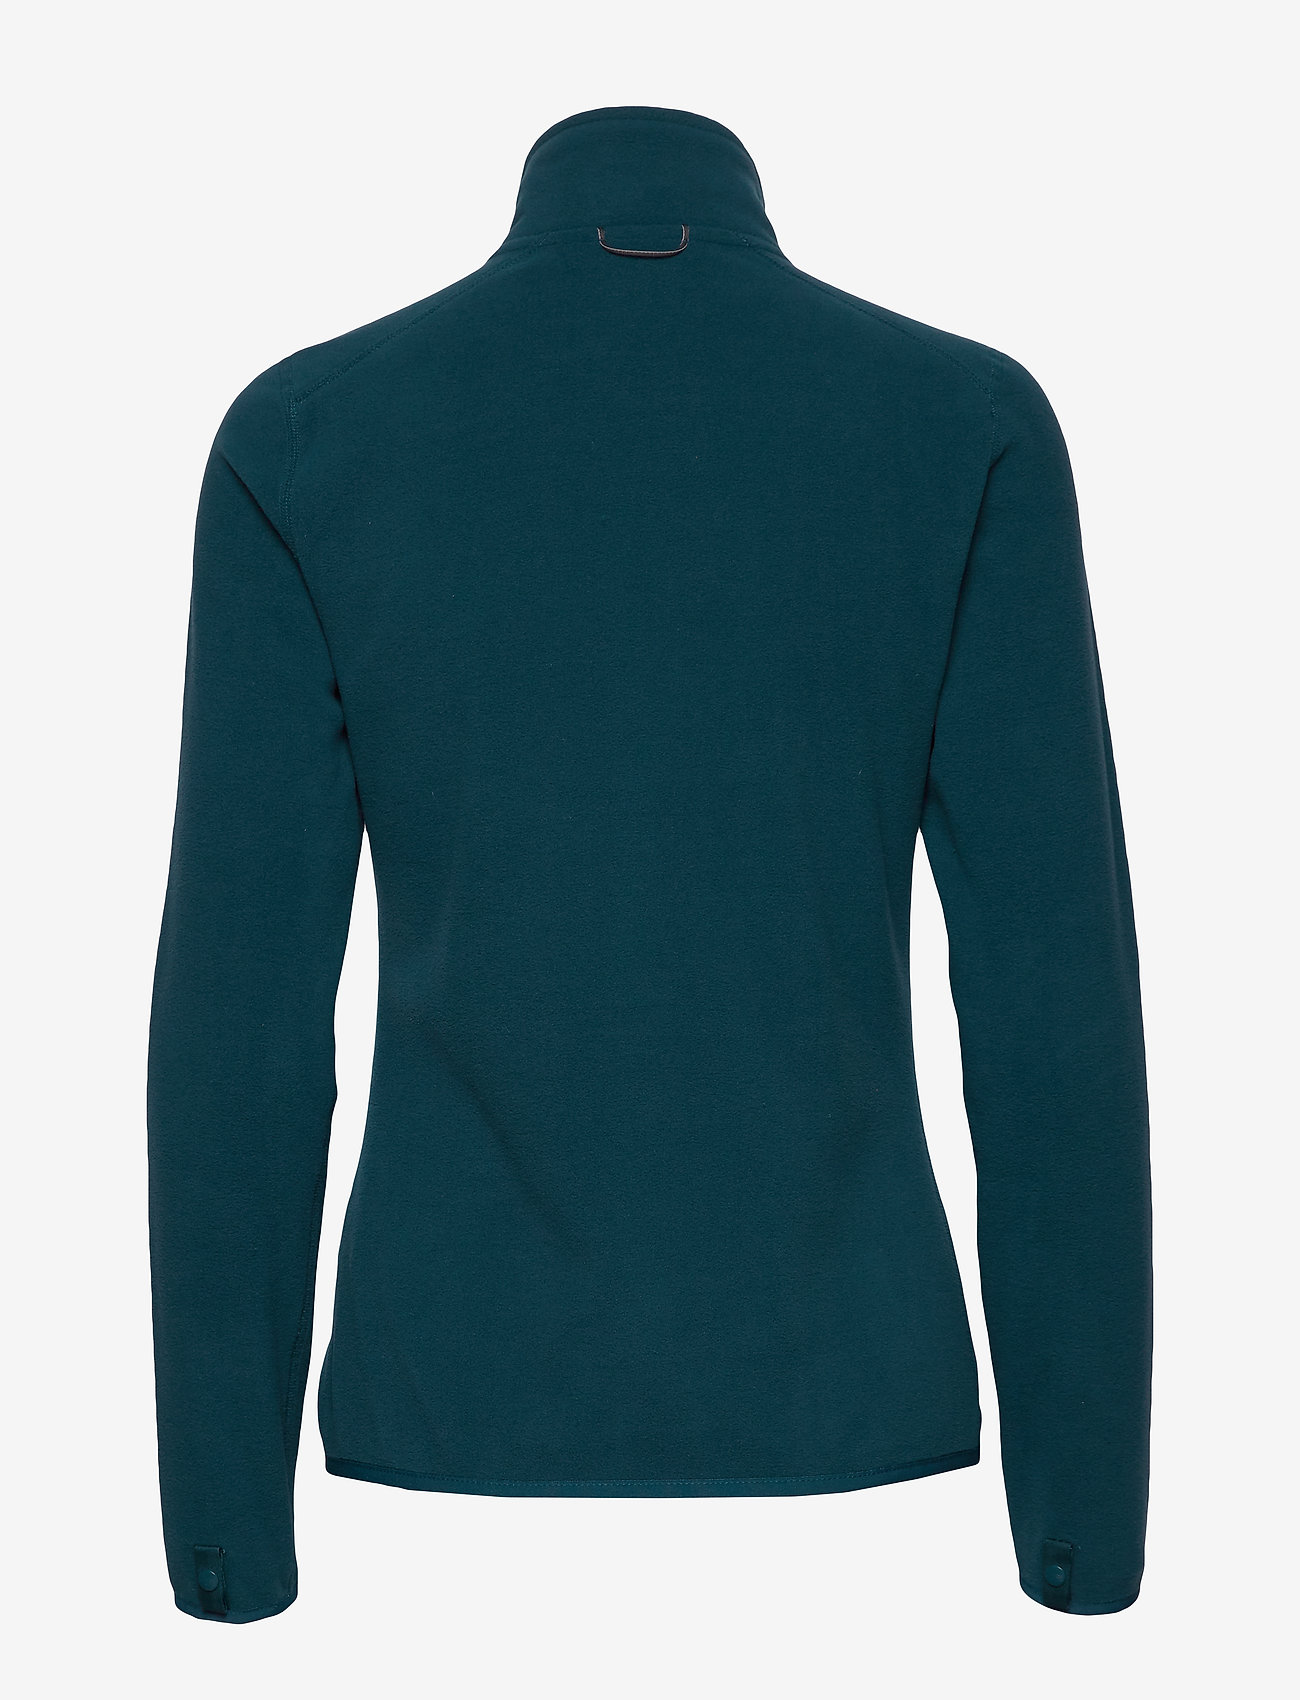 The North Face - W 100 GLACIER FULL ZIP - EU - mellomlag i fleece - blue wing teal - 1